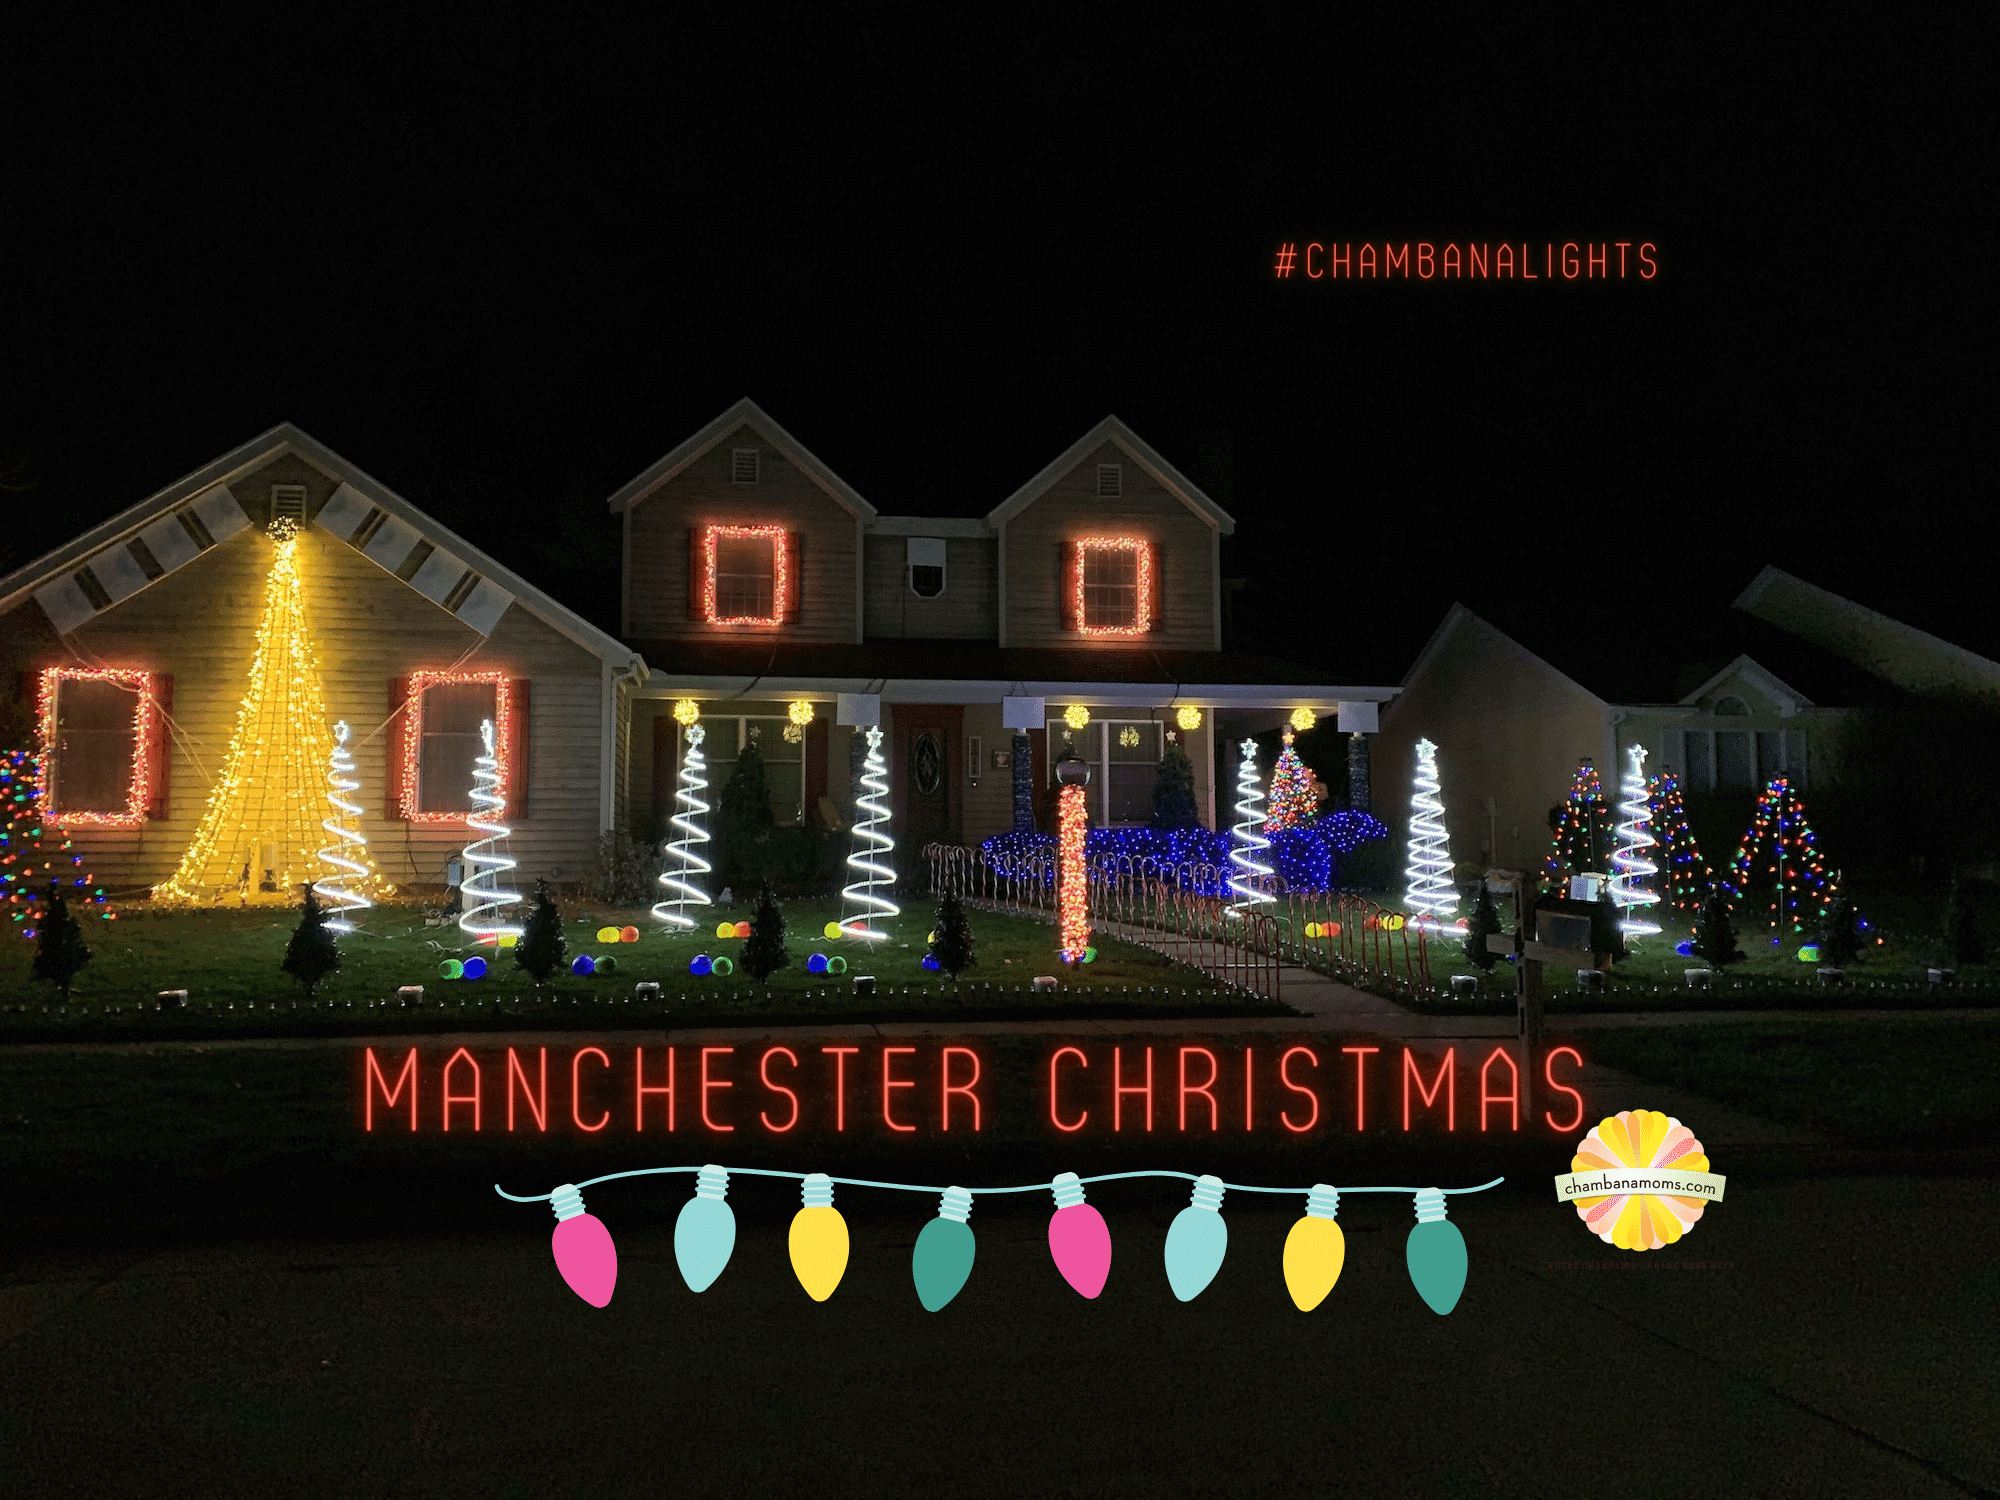 Manchester Christmas Lights Show is a Delightful Addition to the Champaign Holiday Season ...